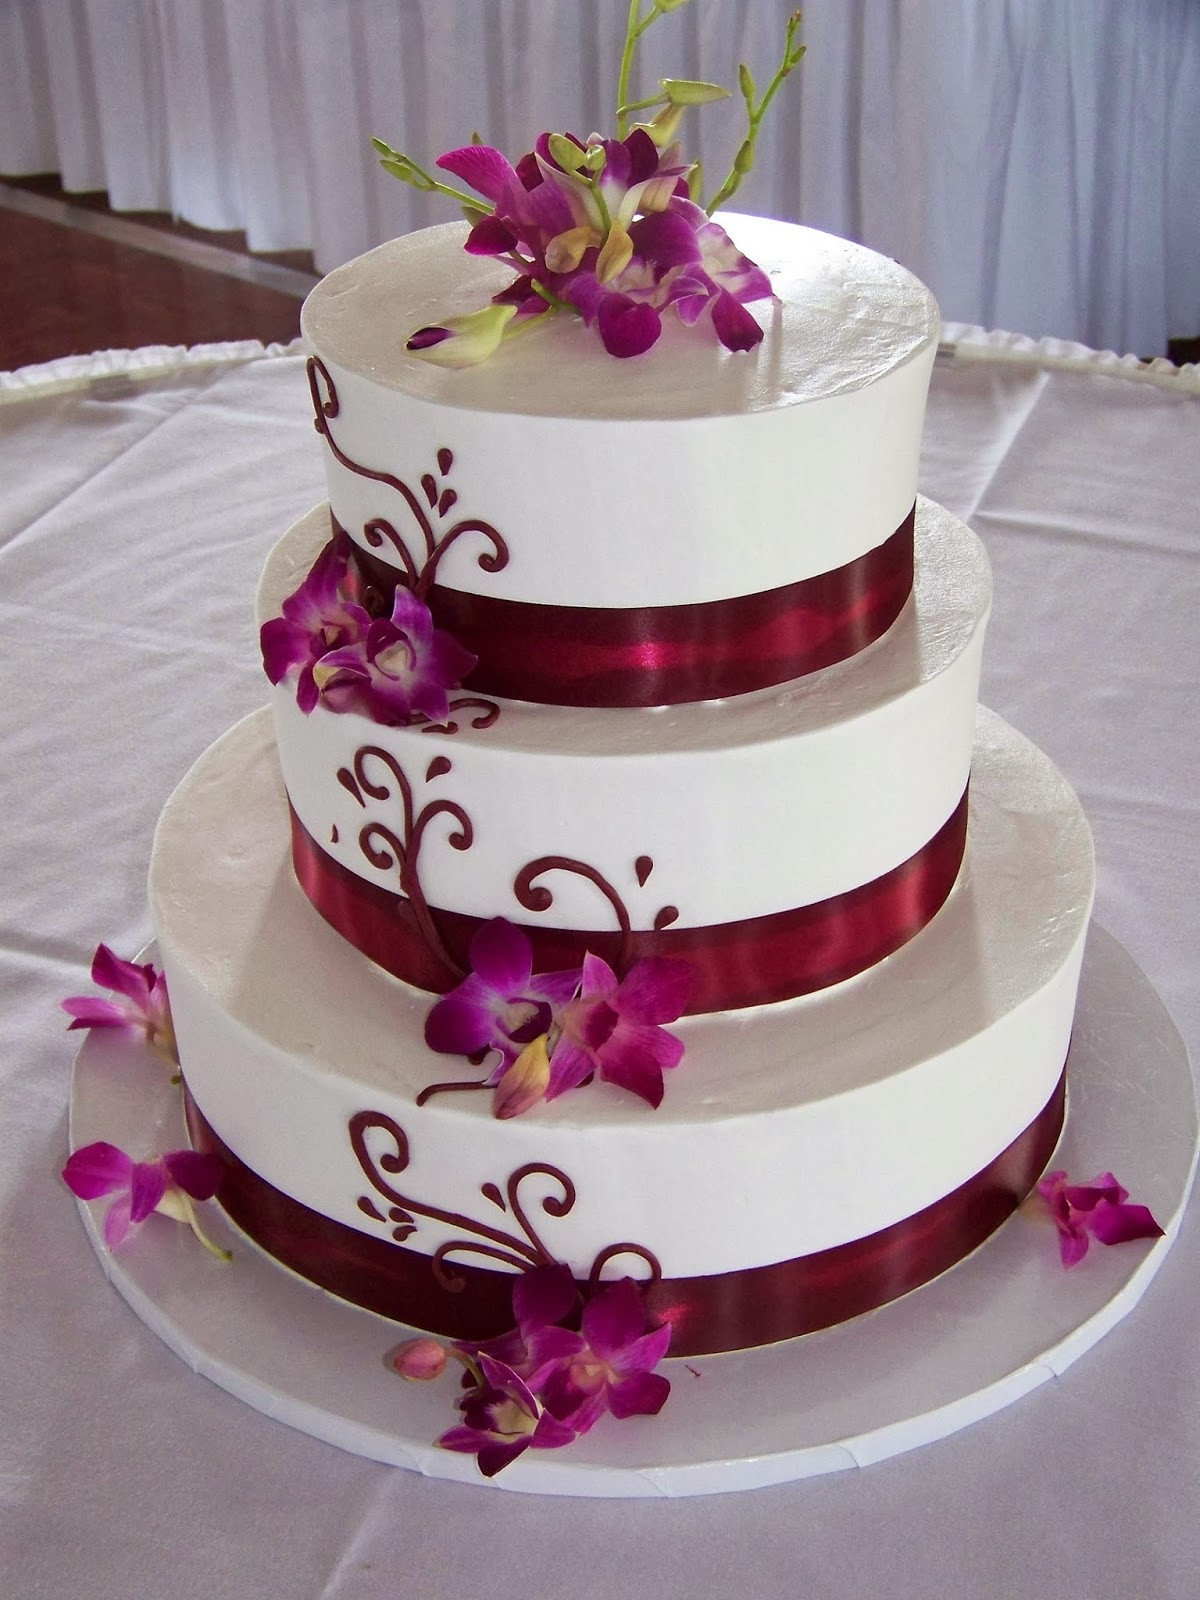 Pics Of Wedding Cakes  7 wonders of the world Wedding Cake Hd Gallery